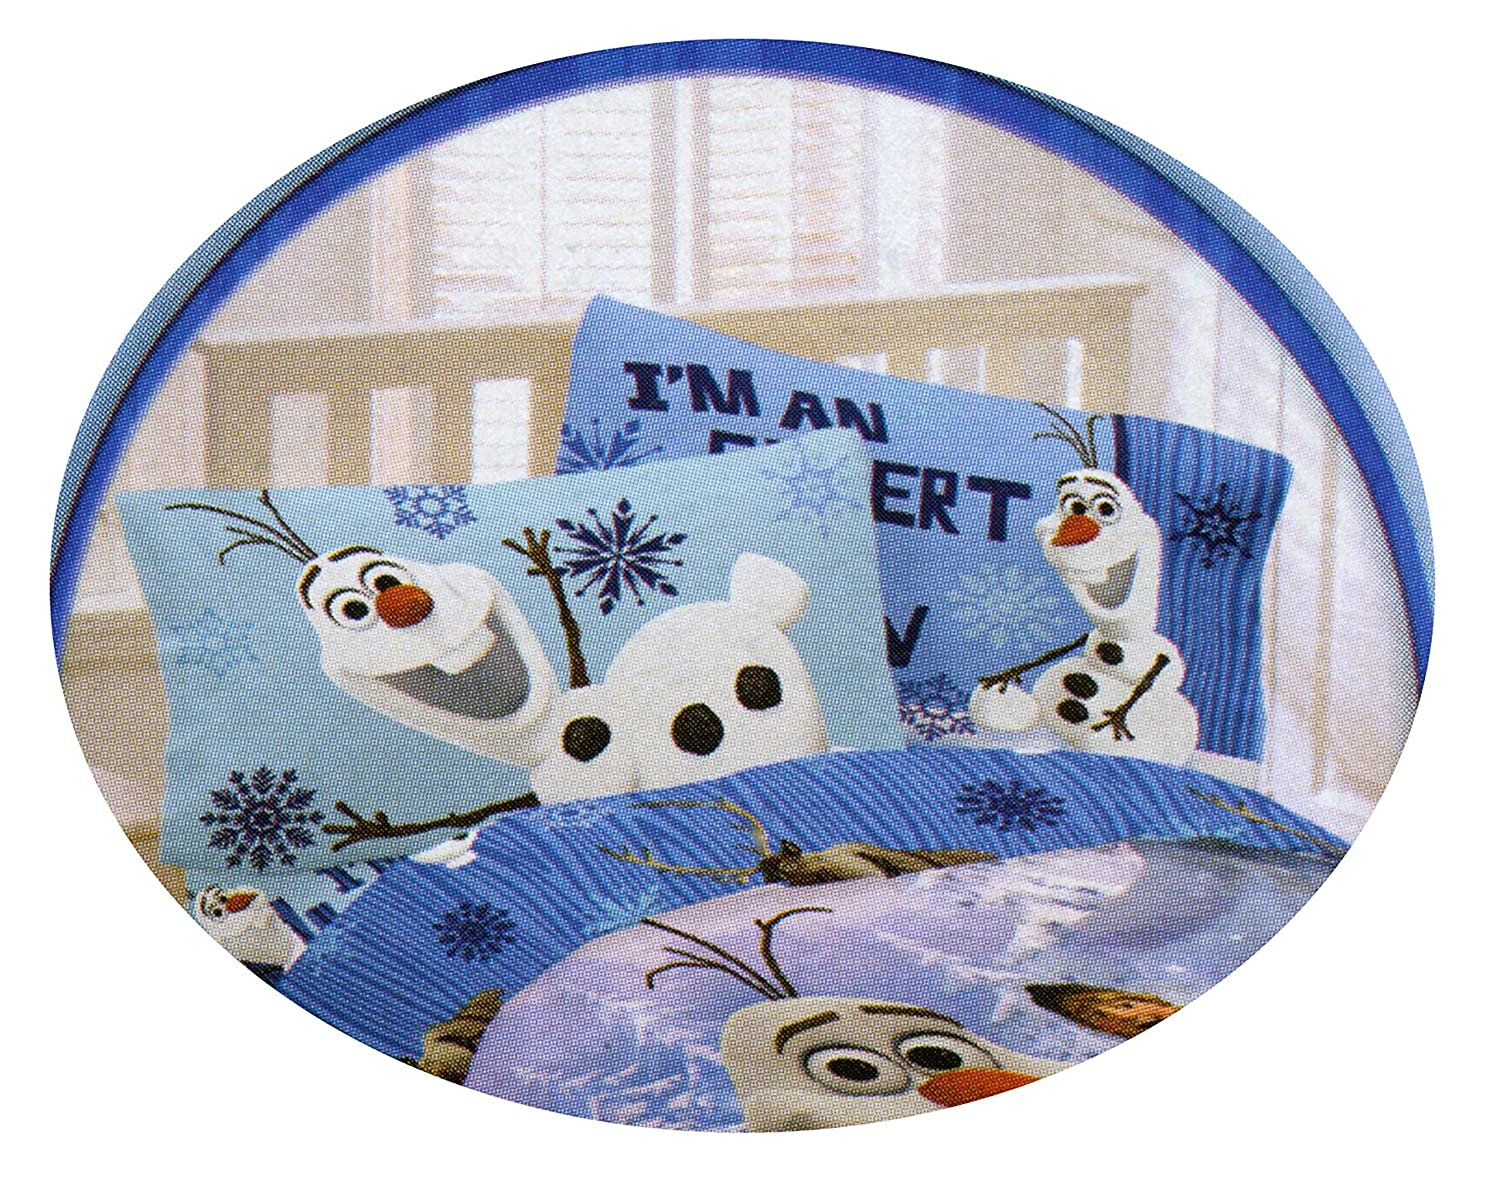 Disney Frozen Kid's Reversible Pillowcase - Olaf